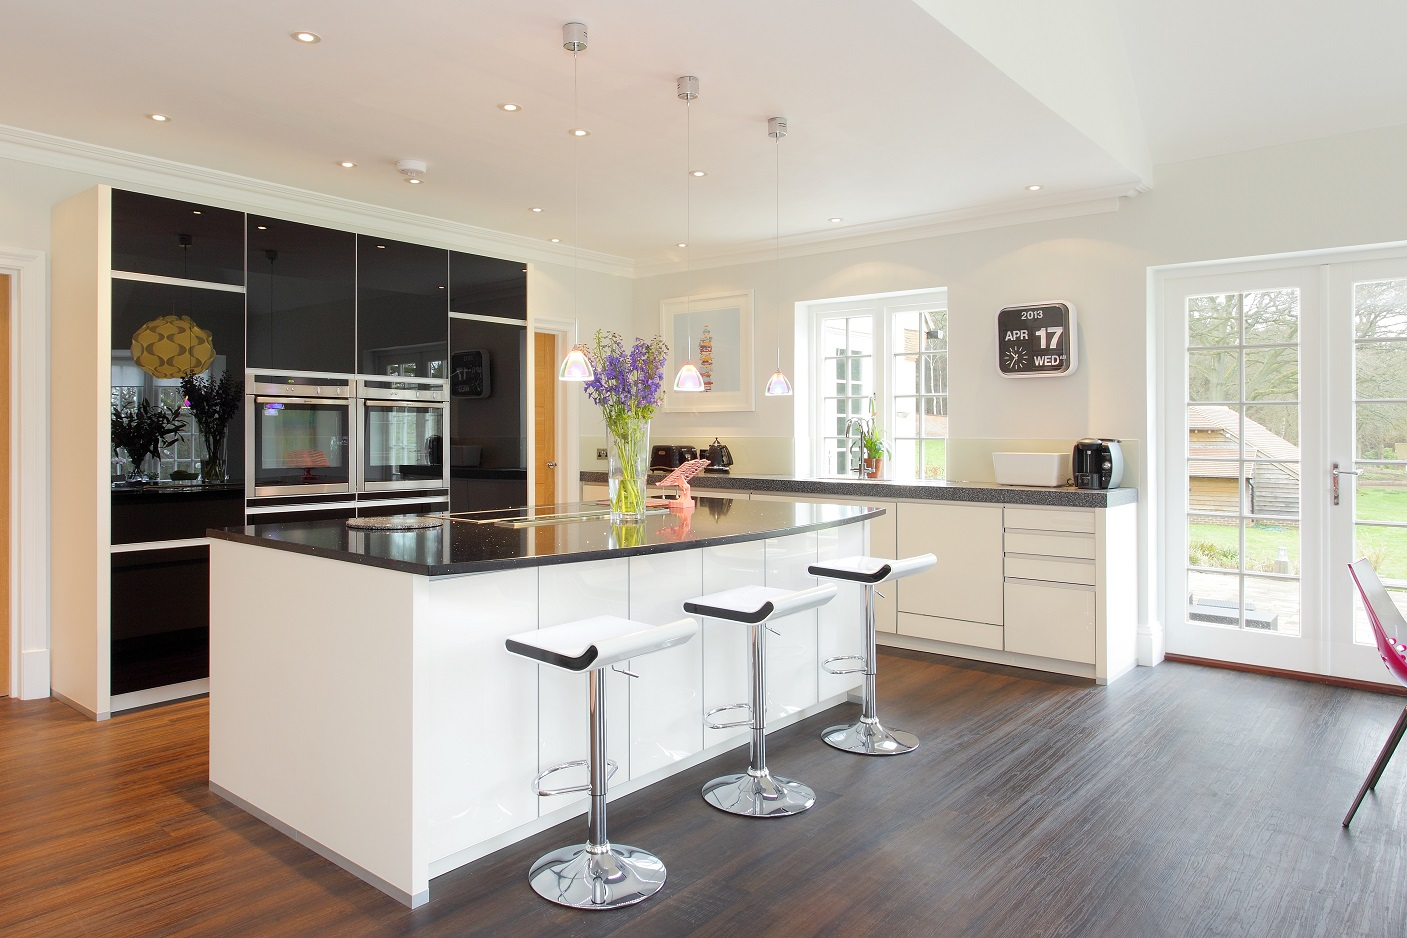 Hampshire kitchens client testimonials Kitchen design companies in surrey